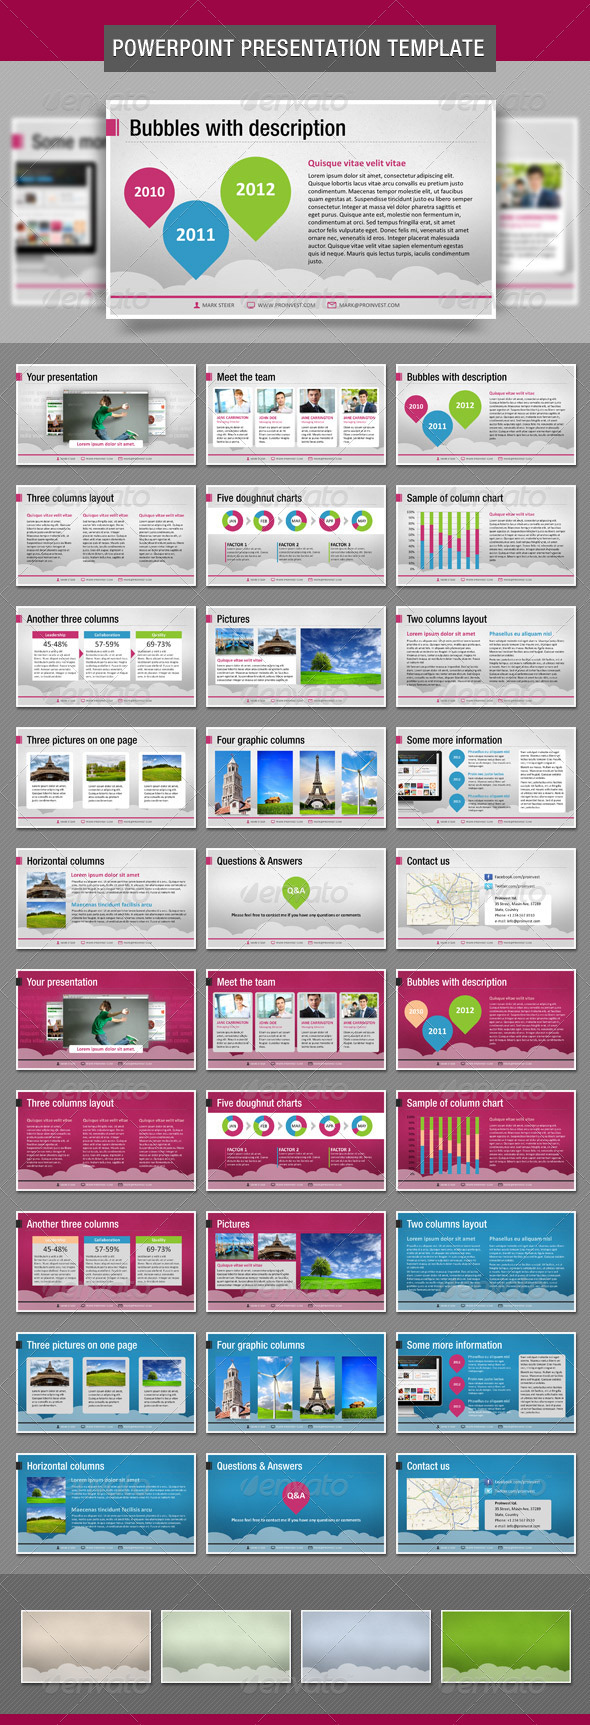 Bubbles PowerPoint Presentation Template - Business Powerpoint Templates